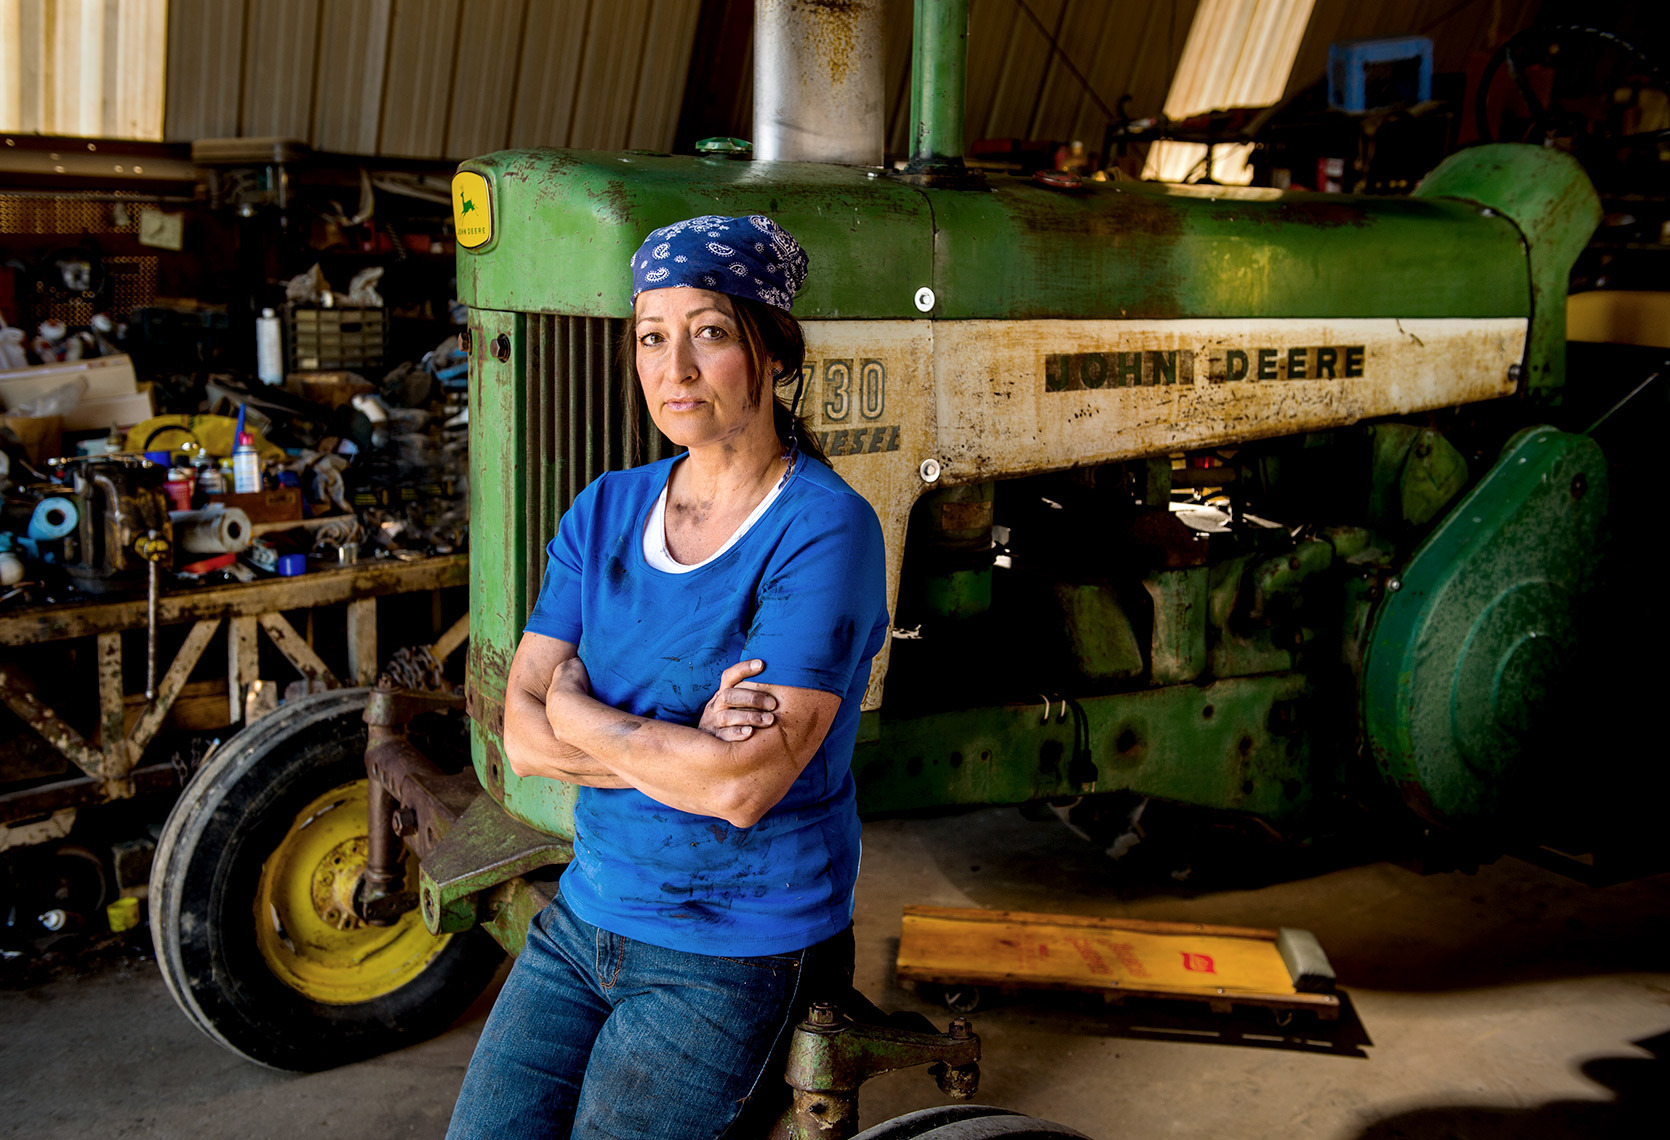 Female Tractor Mechanic